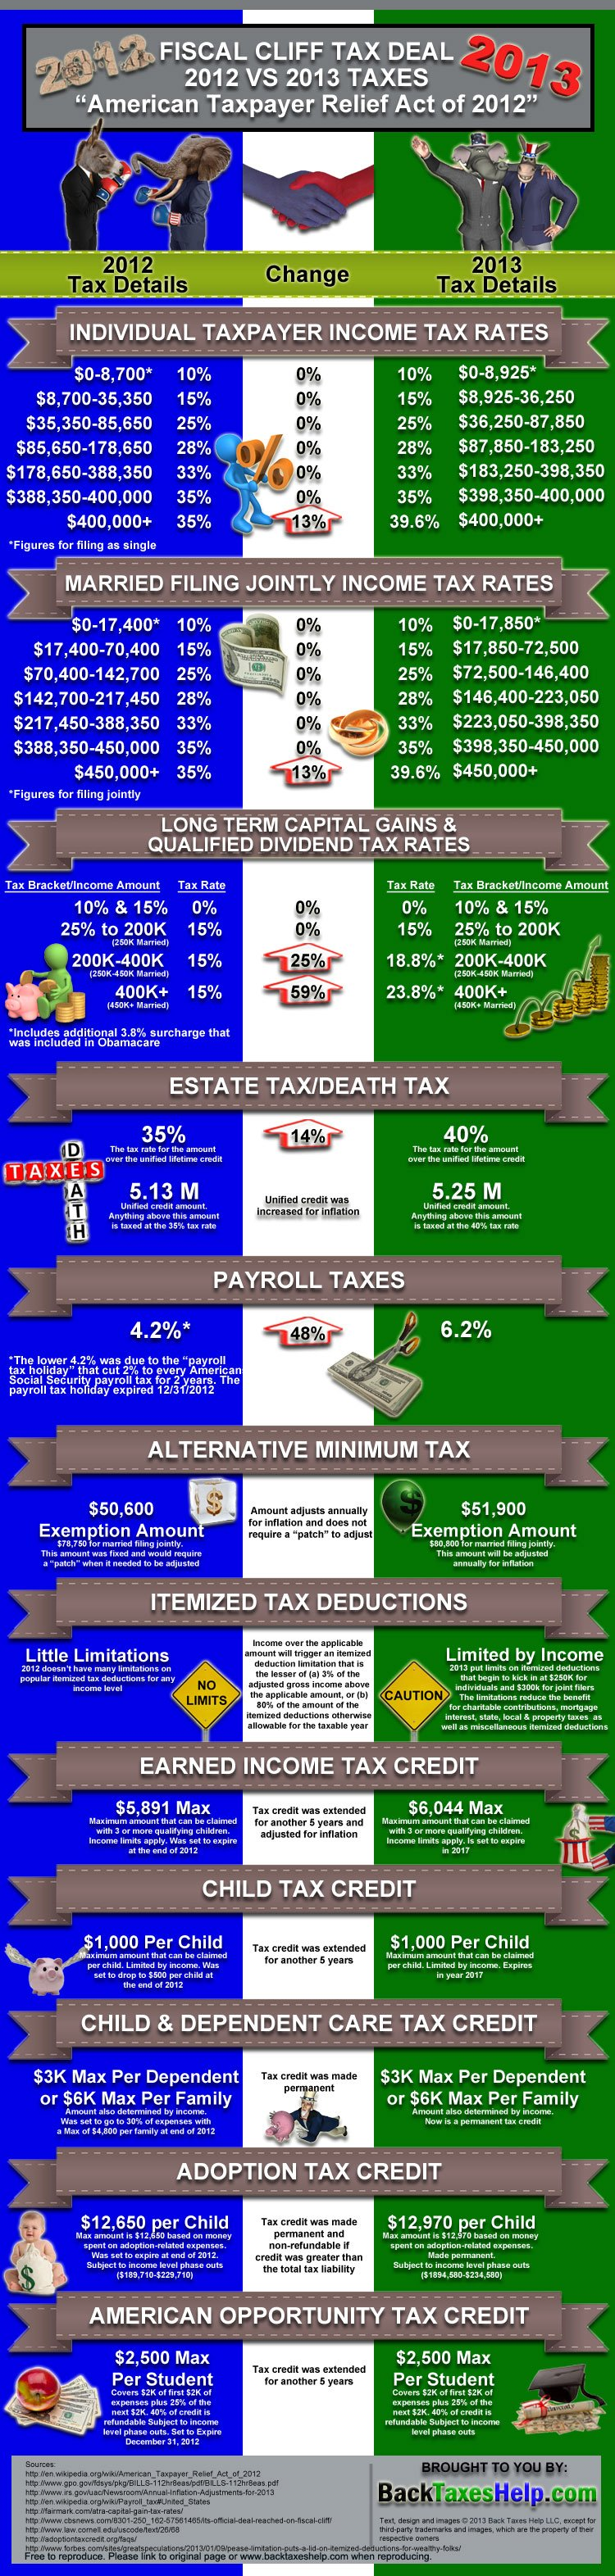 american taxpayer relief act of 2012 infographic